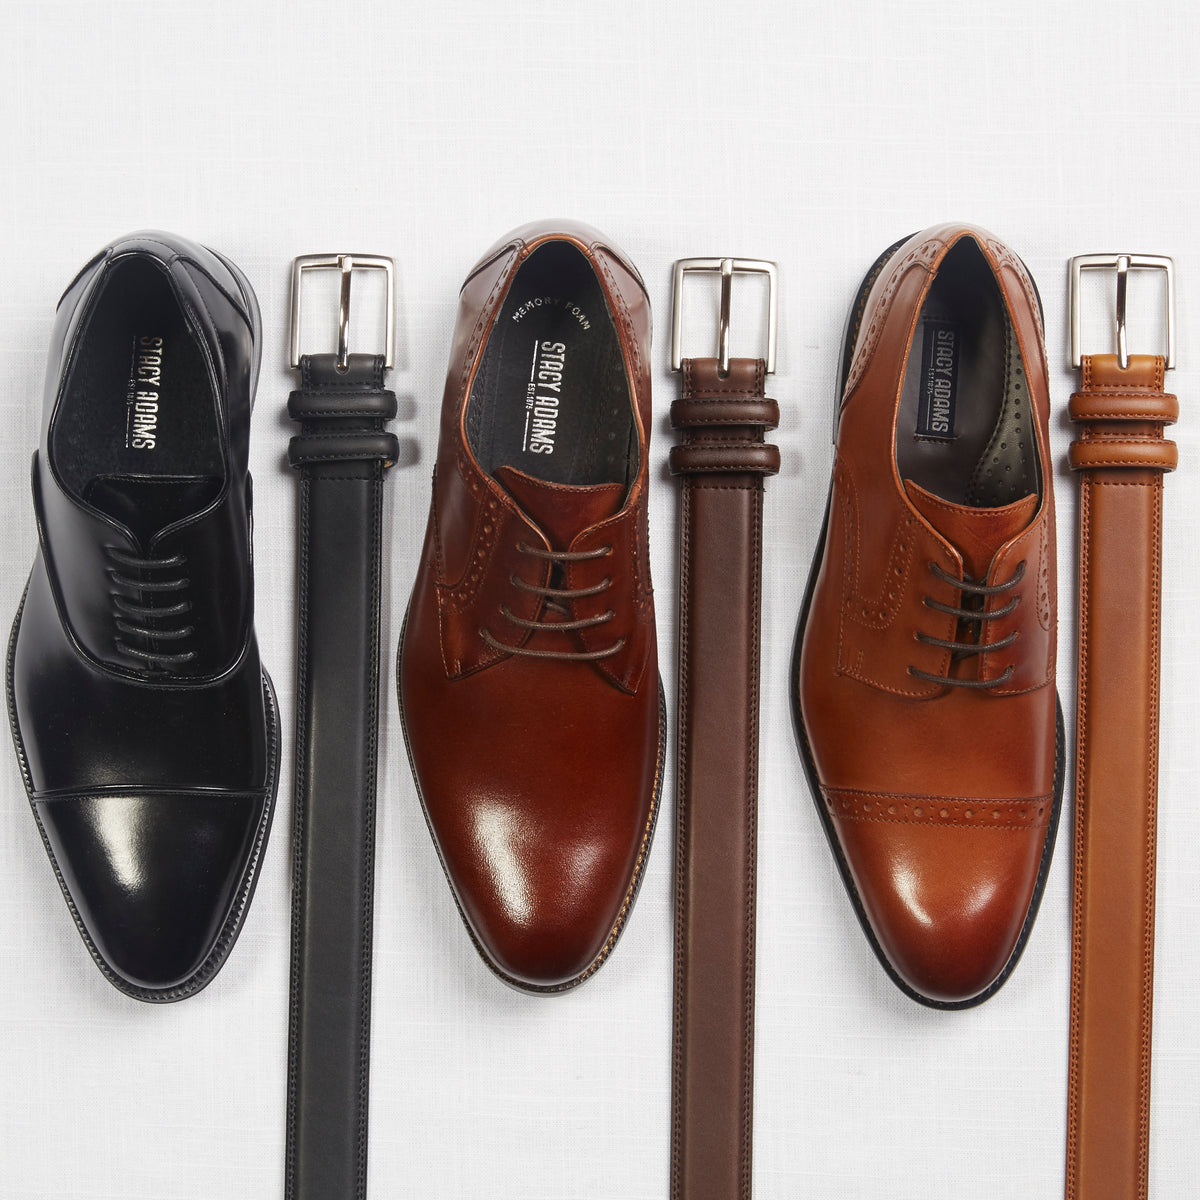 The Brown Vs. Black Shoe Debate With Navy Suiting